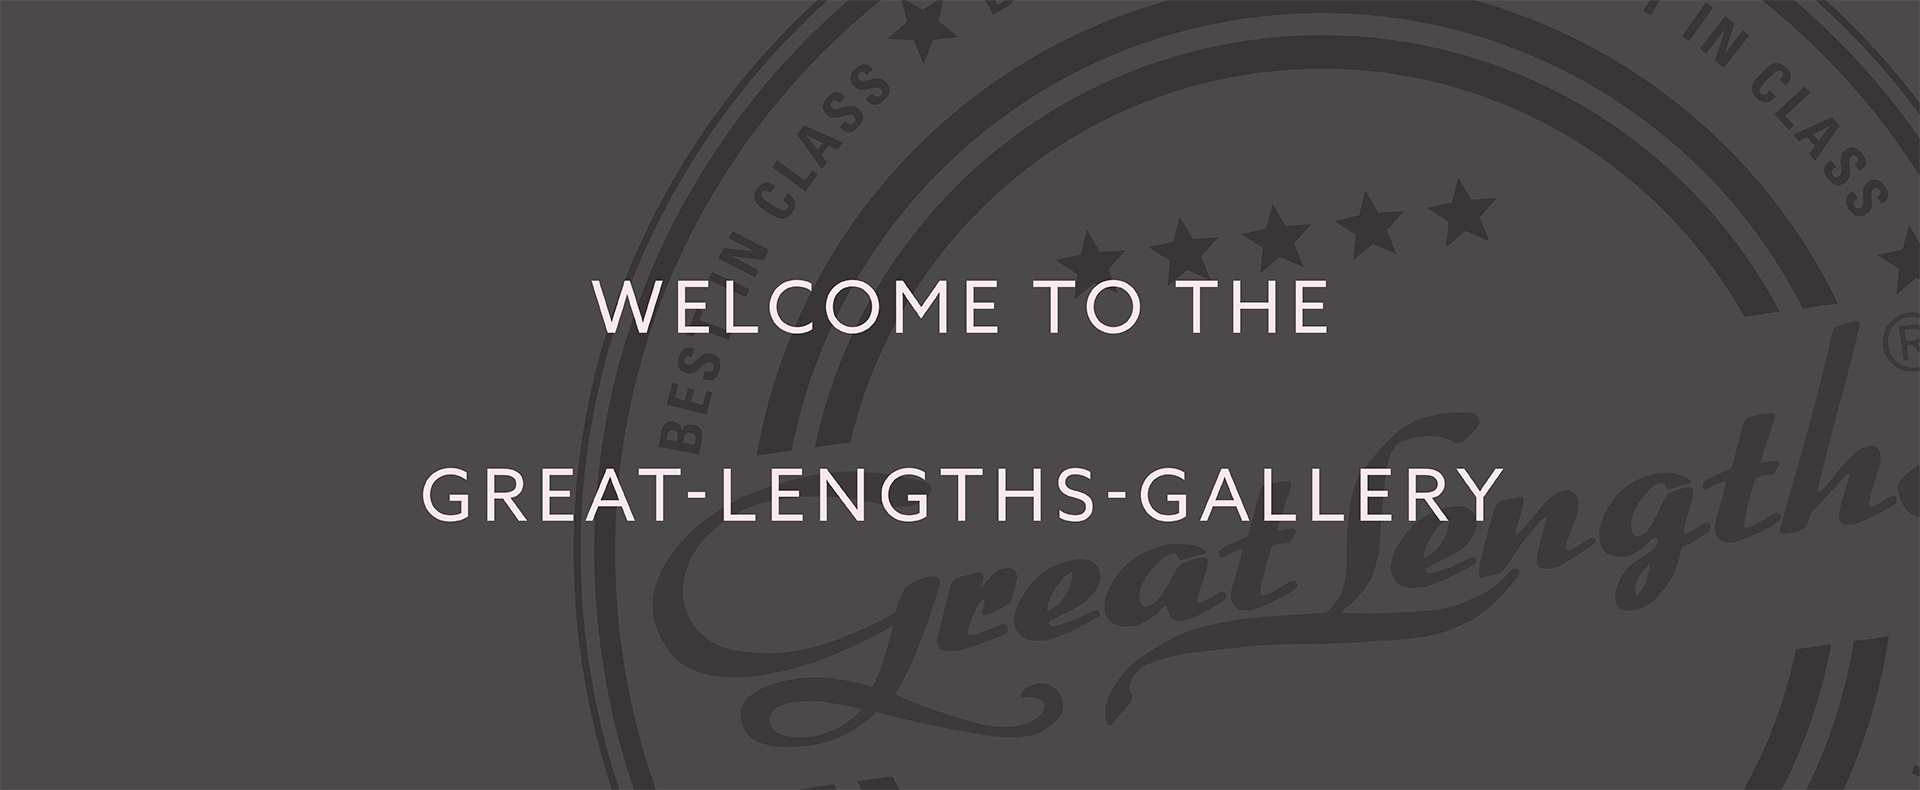 Welcome to the gallery (© Great Lengths)